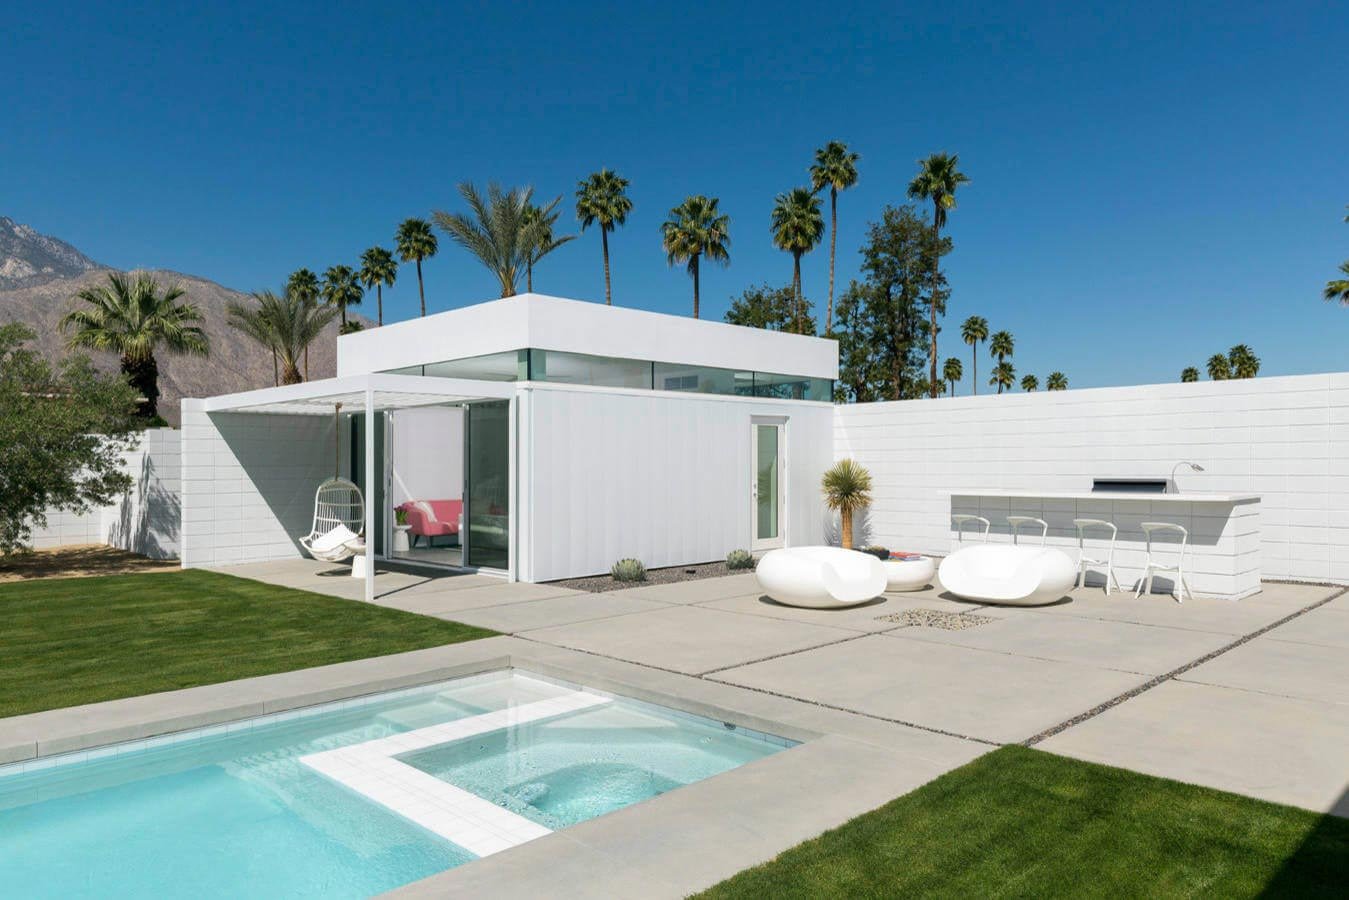 Midcentury modern white house in palm springs california for Mid century modern furniture palm springs